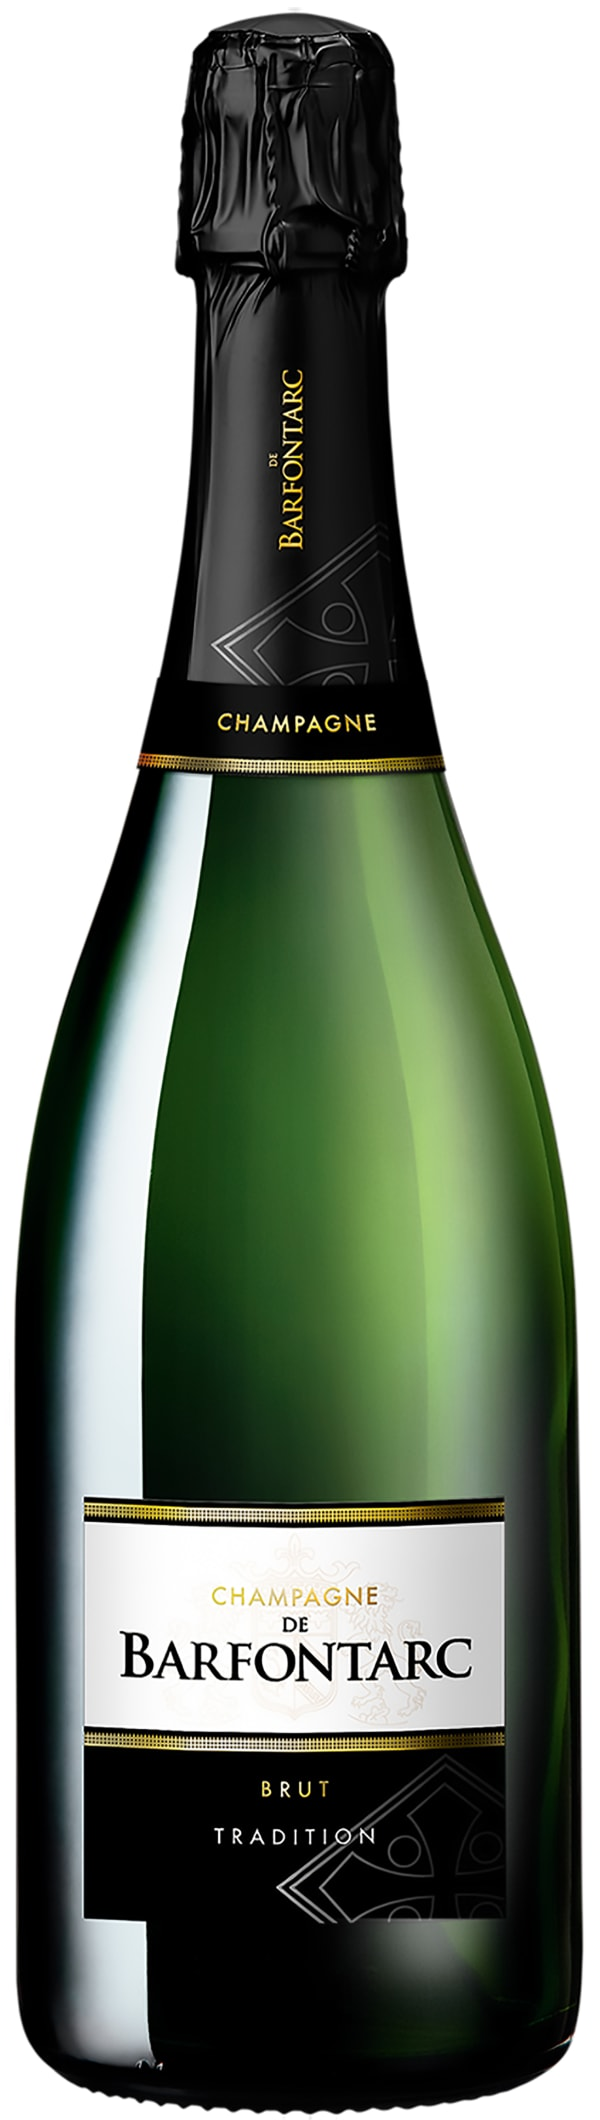 Barfontarc Tradition Champagne Brut